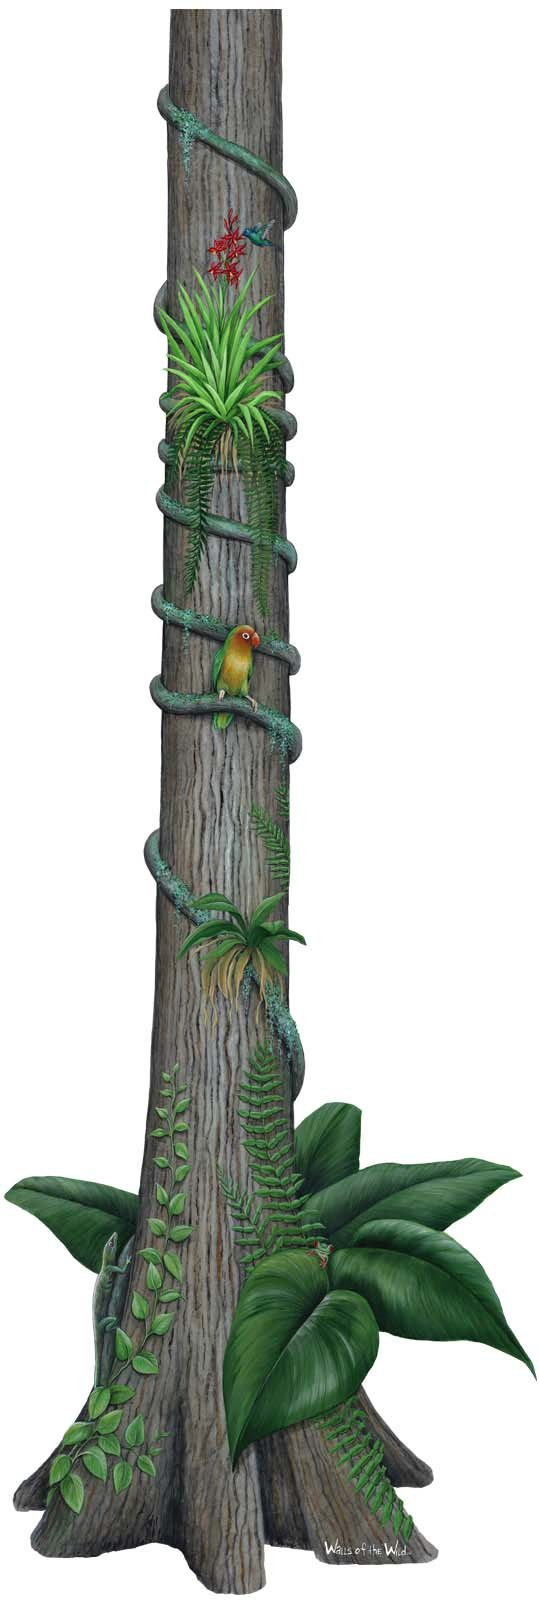 Rainforest Tree Peel and Stick Wall Sticker - Wall Sticker Outlet